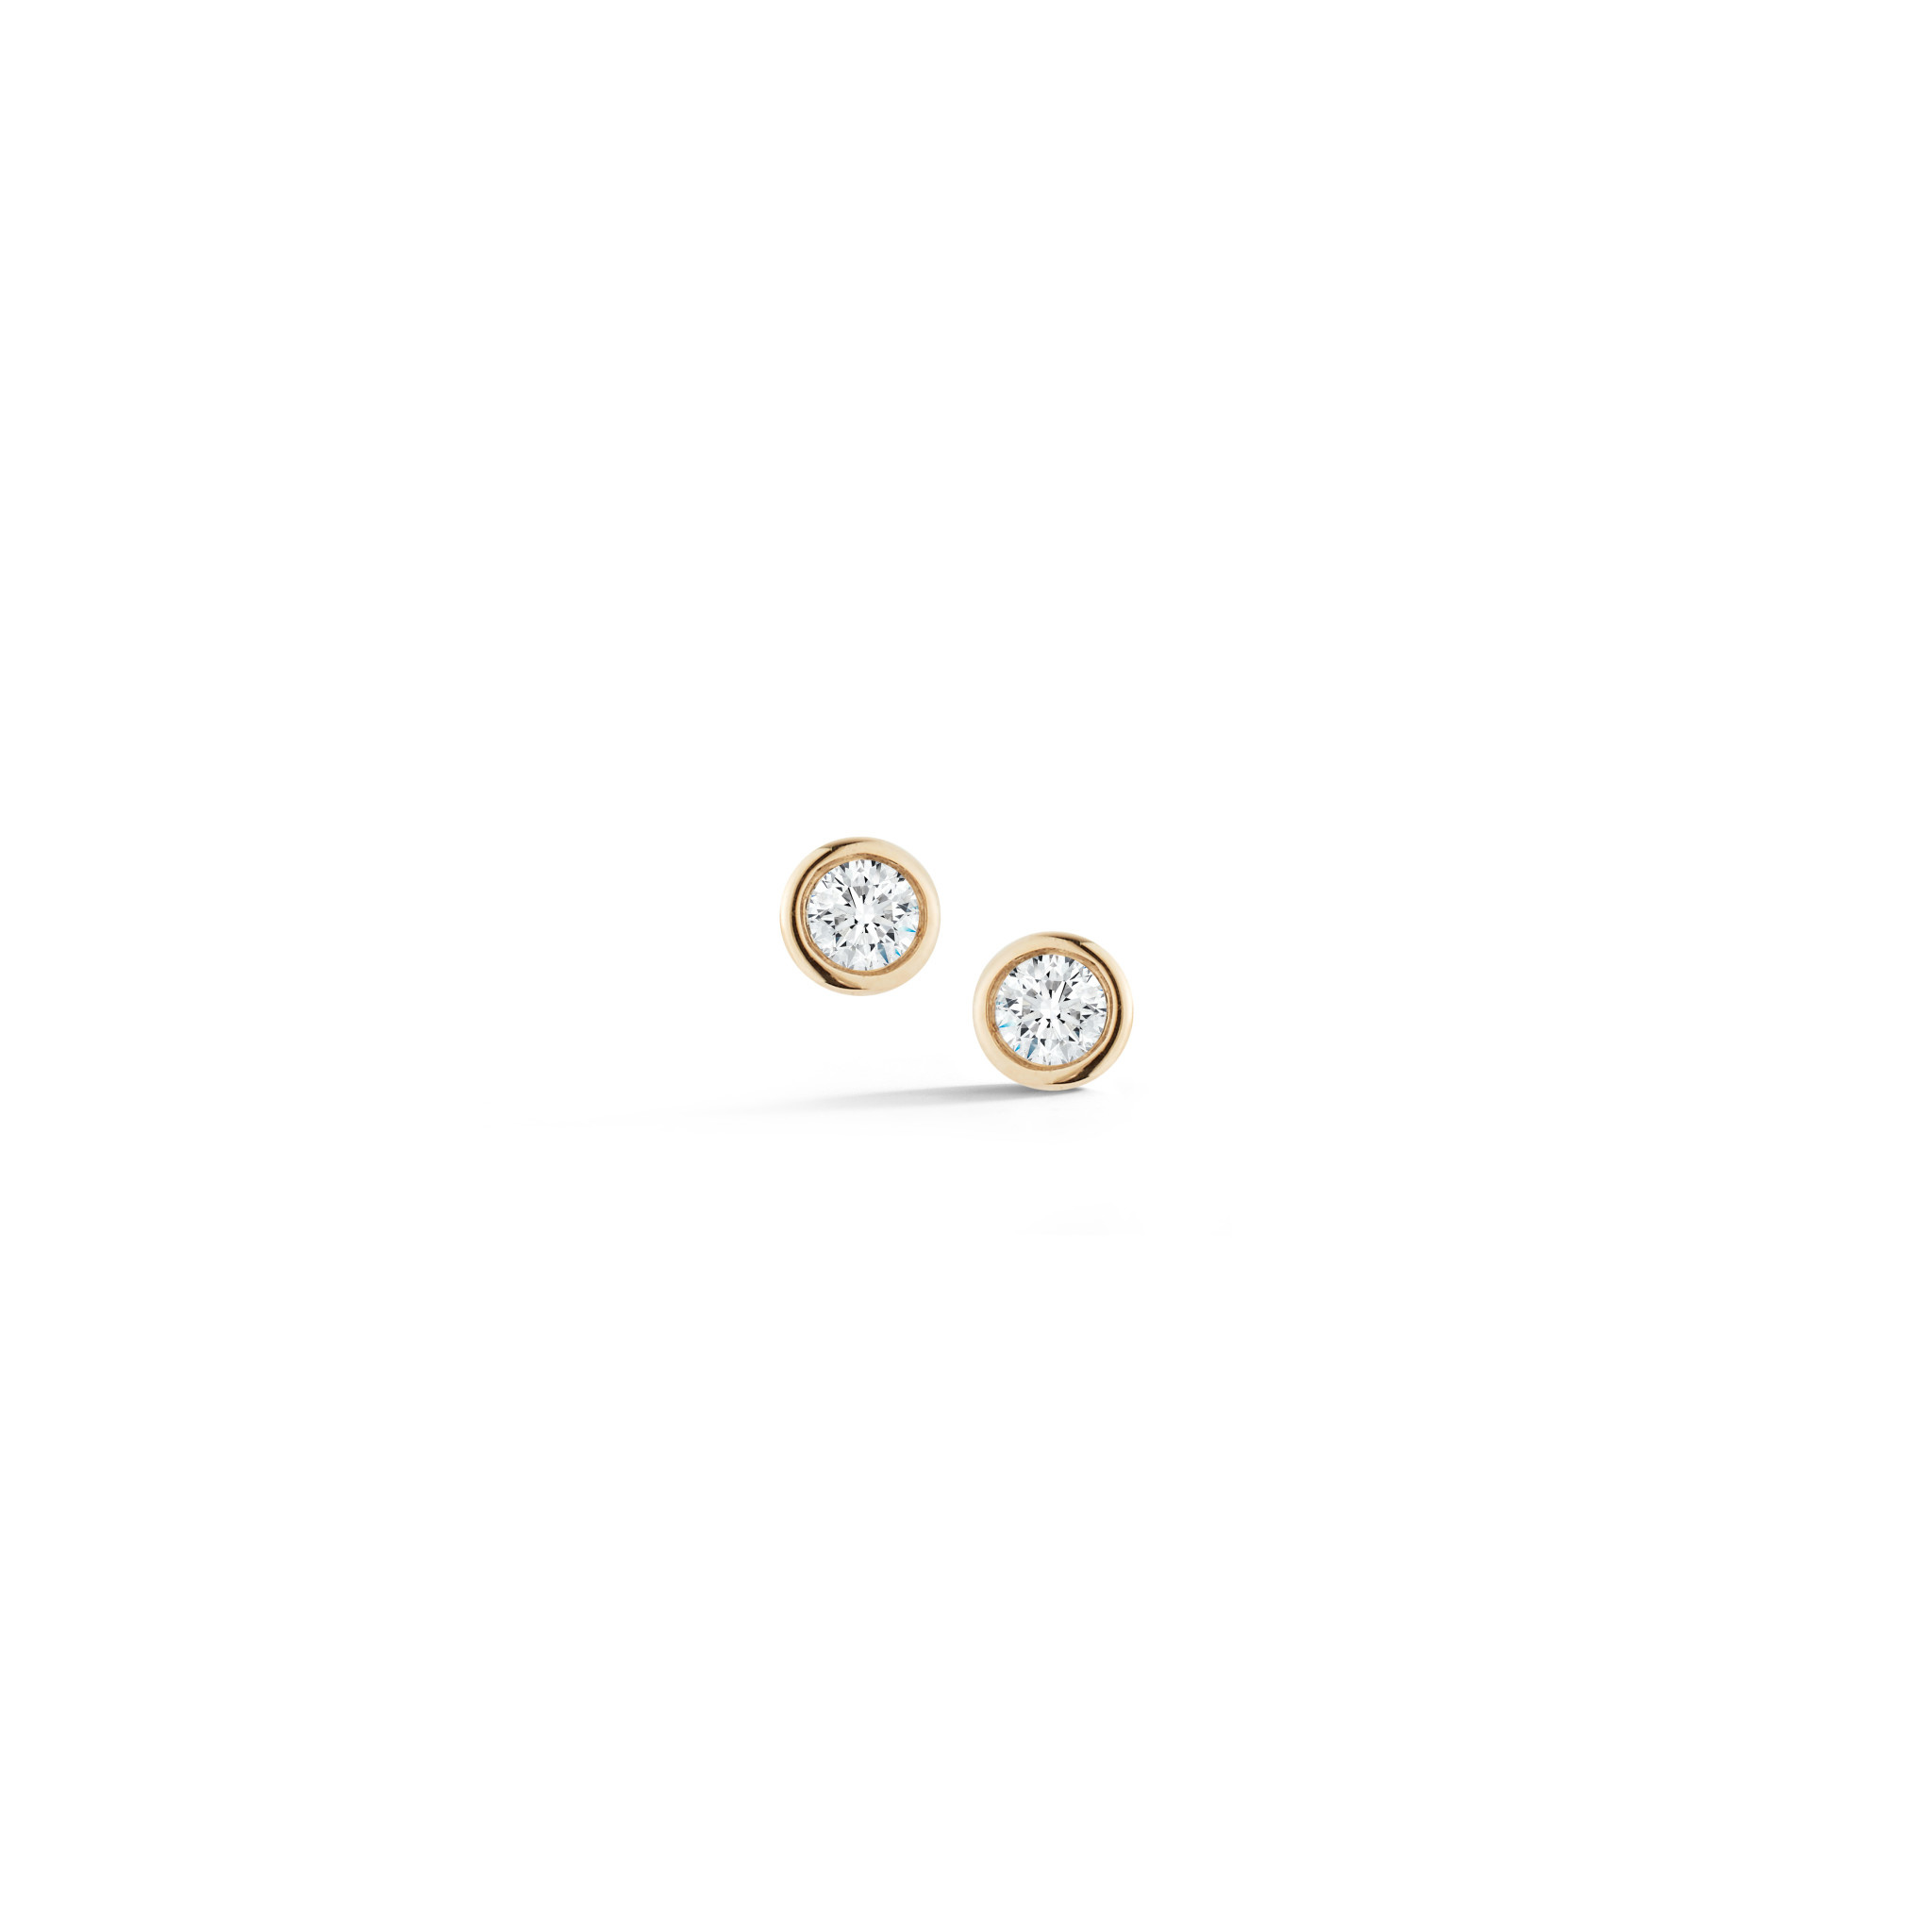 Dana Rebecca Lulu Jack TinyBezel Diamond Earrings